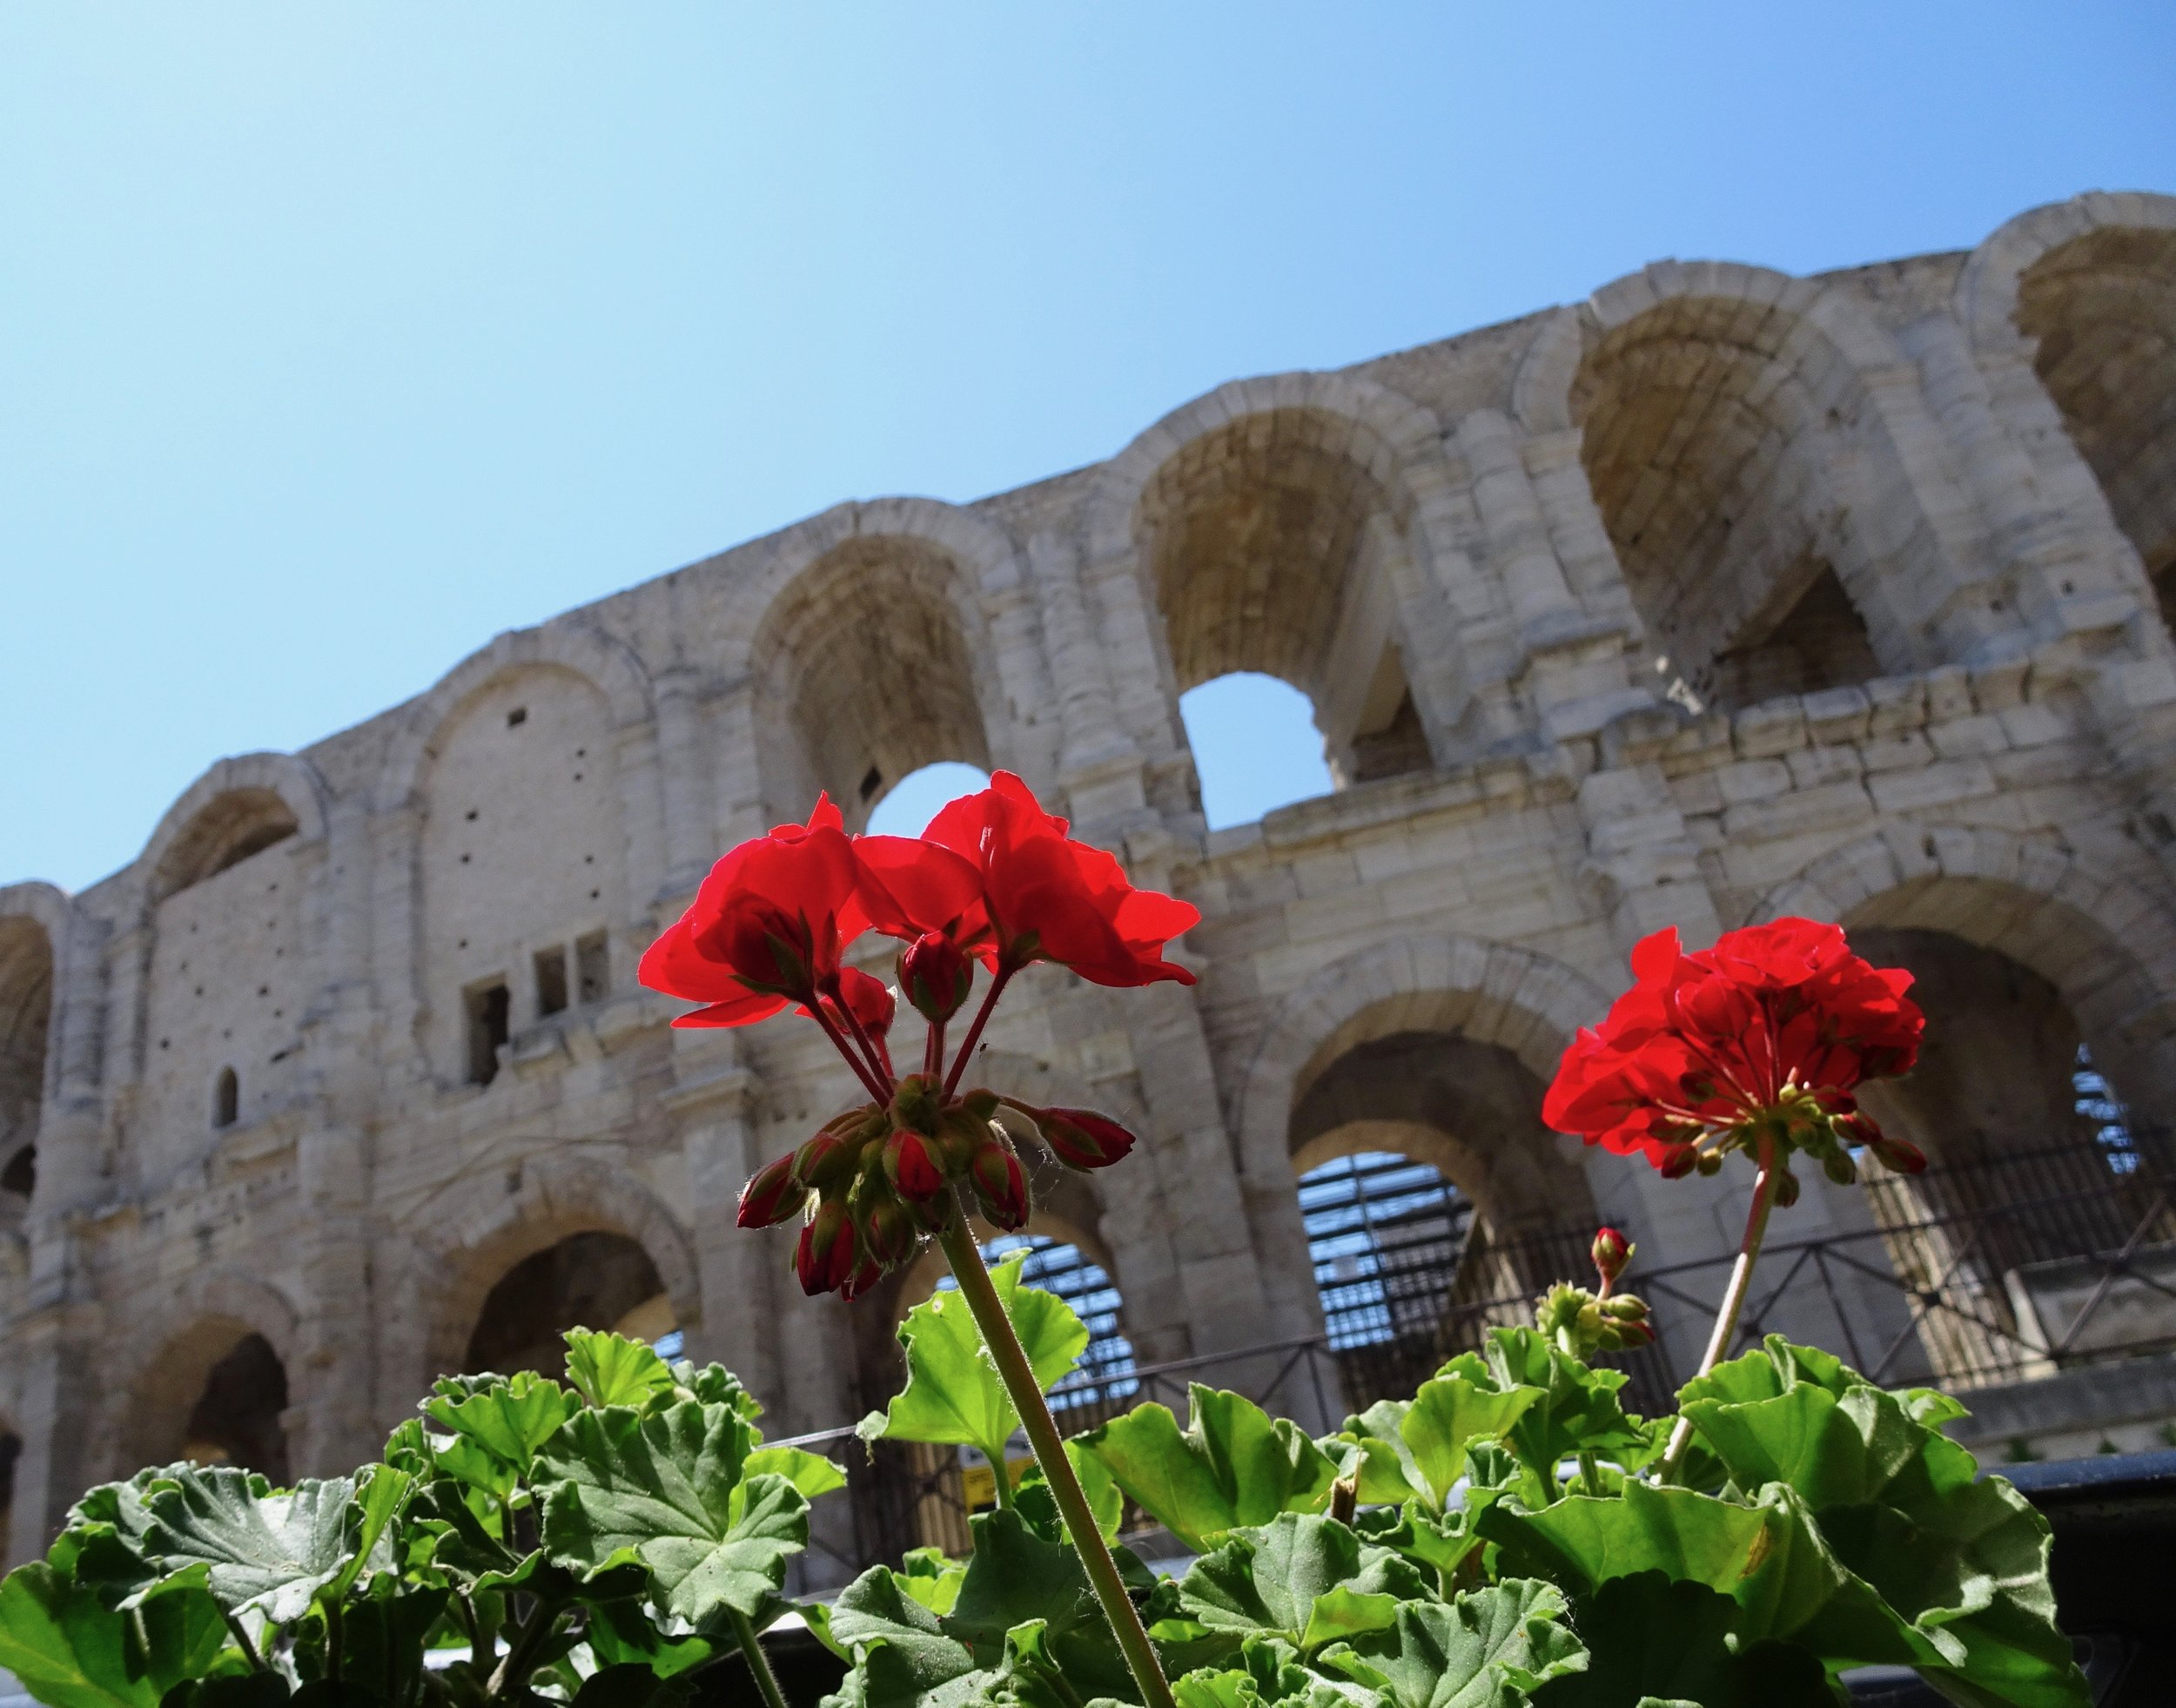 Arles, smaller than Nimes, but cleaned